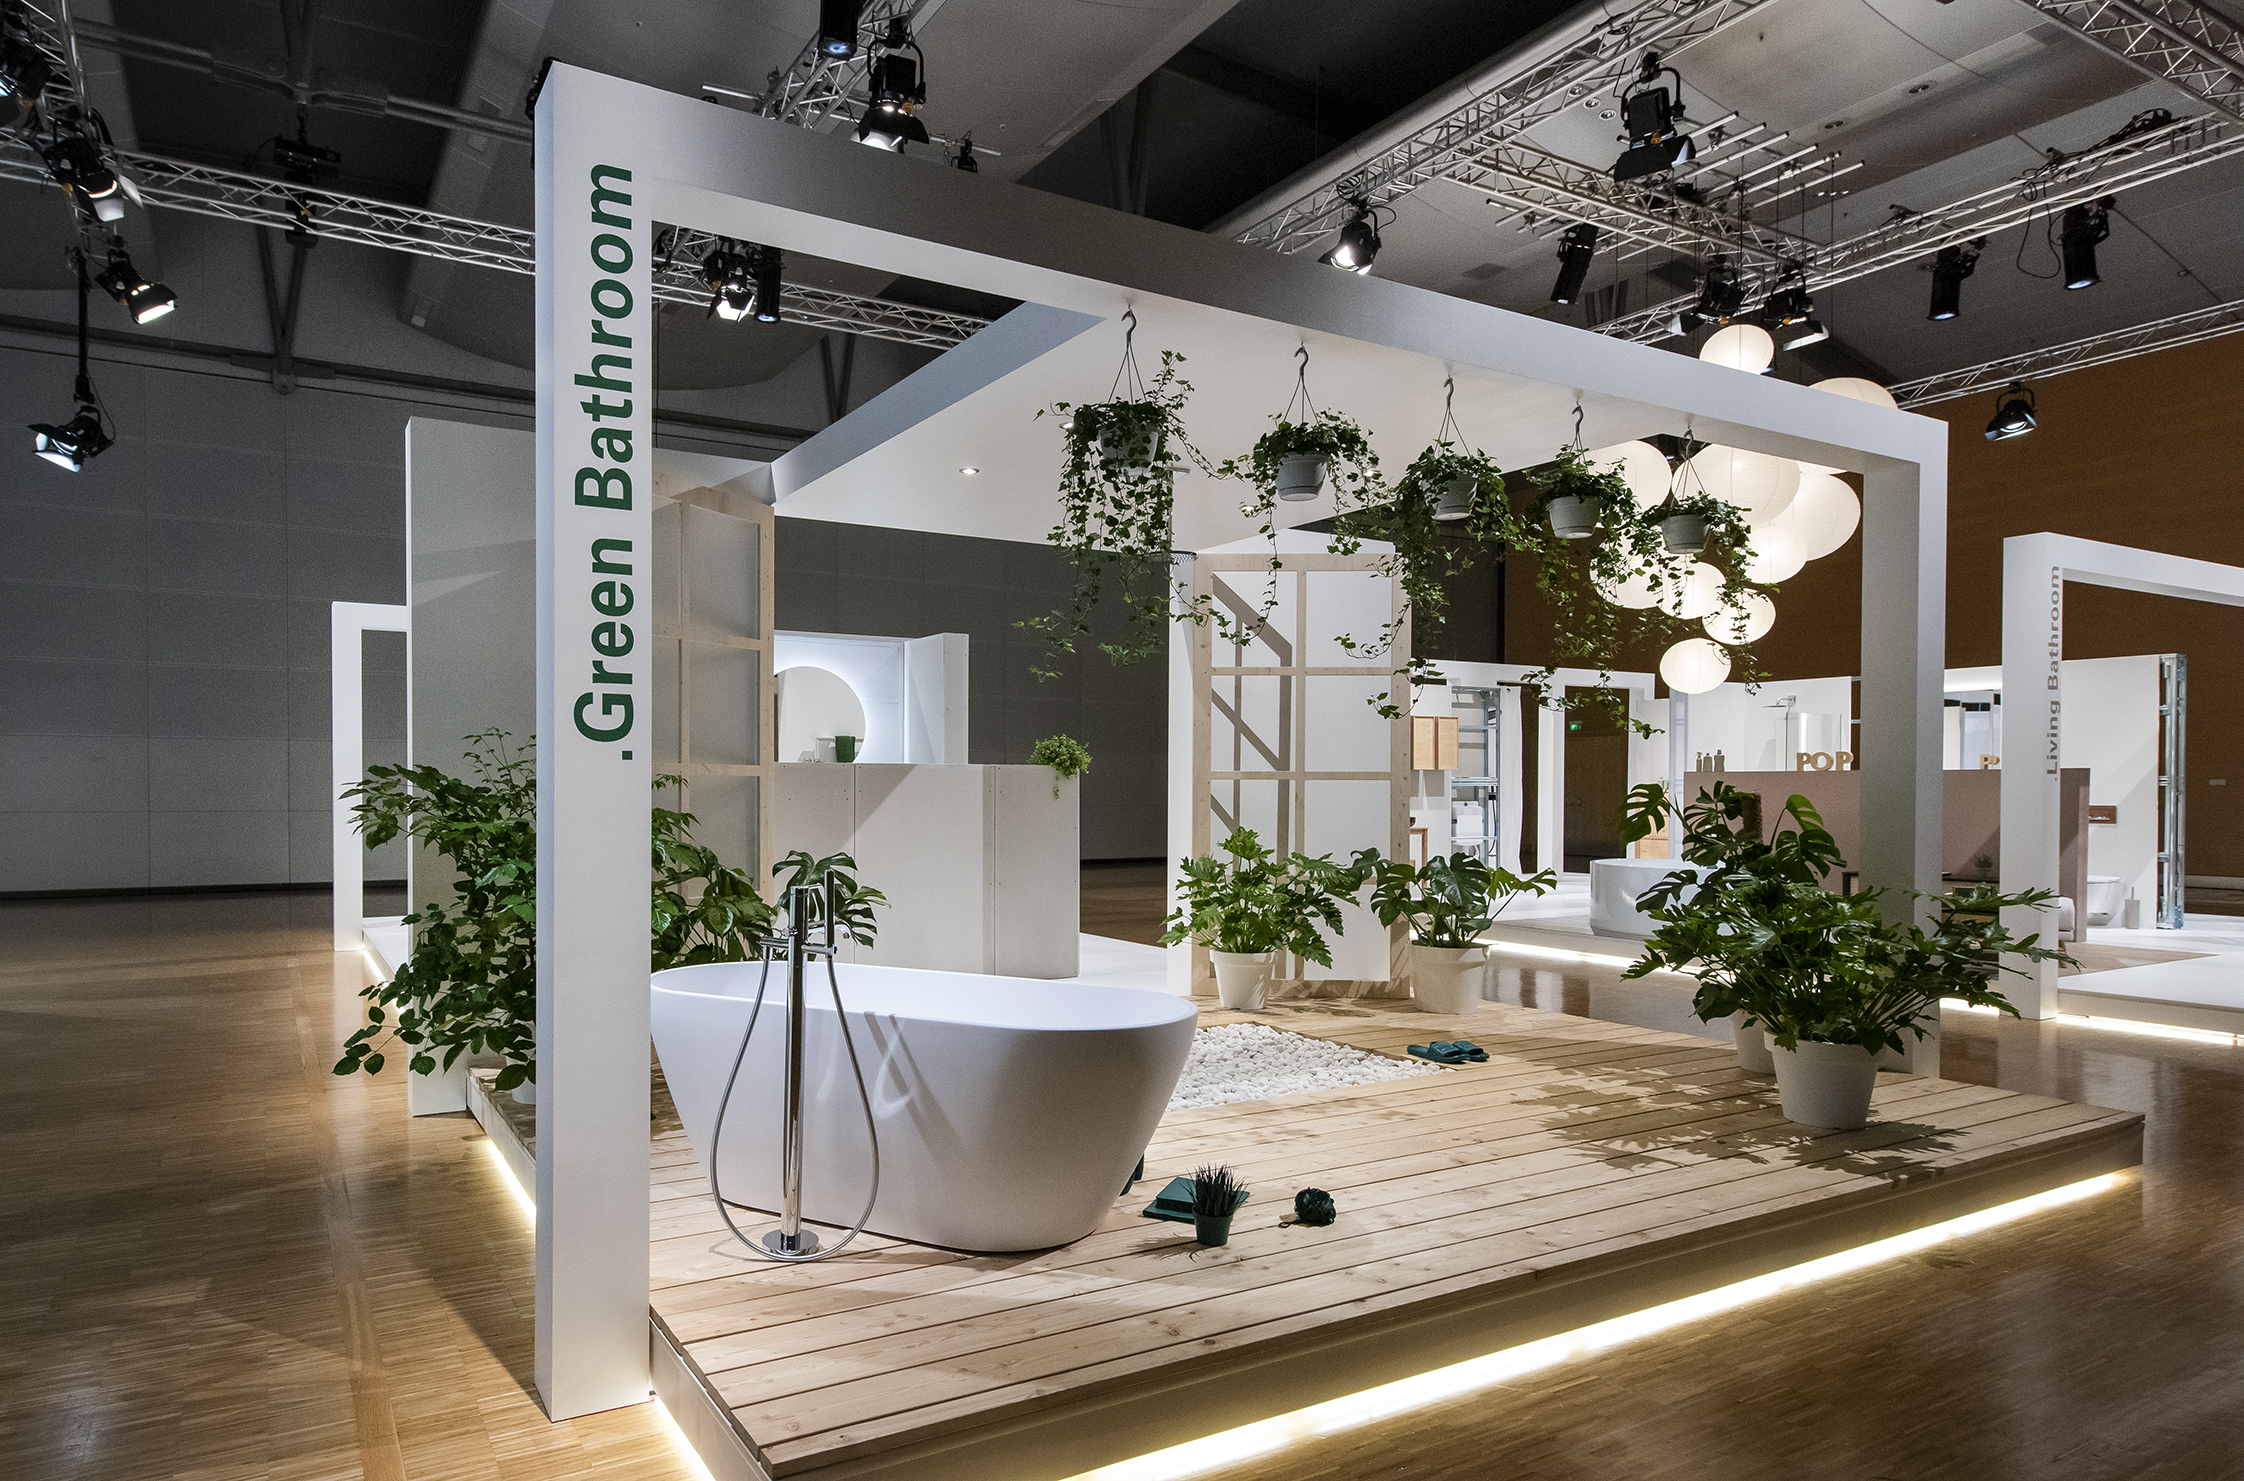 ISH digital 2021 / Pop up my Bathroom (Quelle: Messe Frankfurt Exhibition GmbH / Petra Welzel)